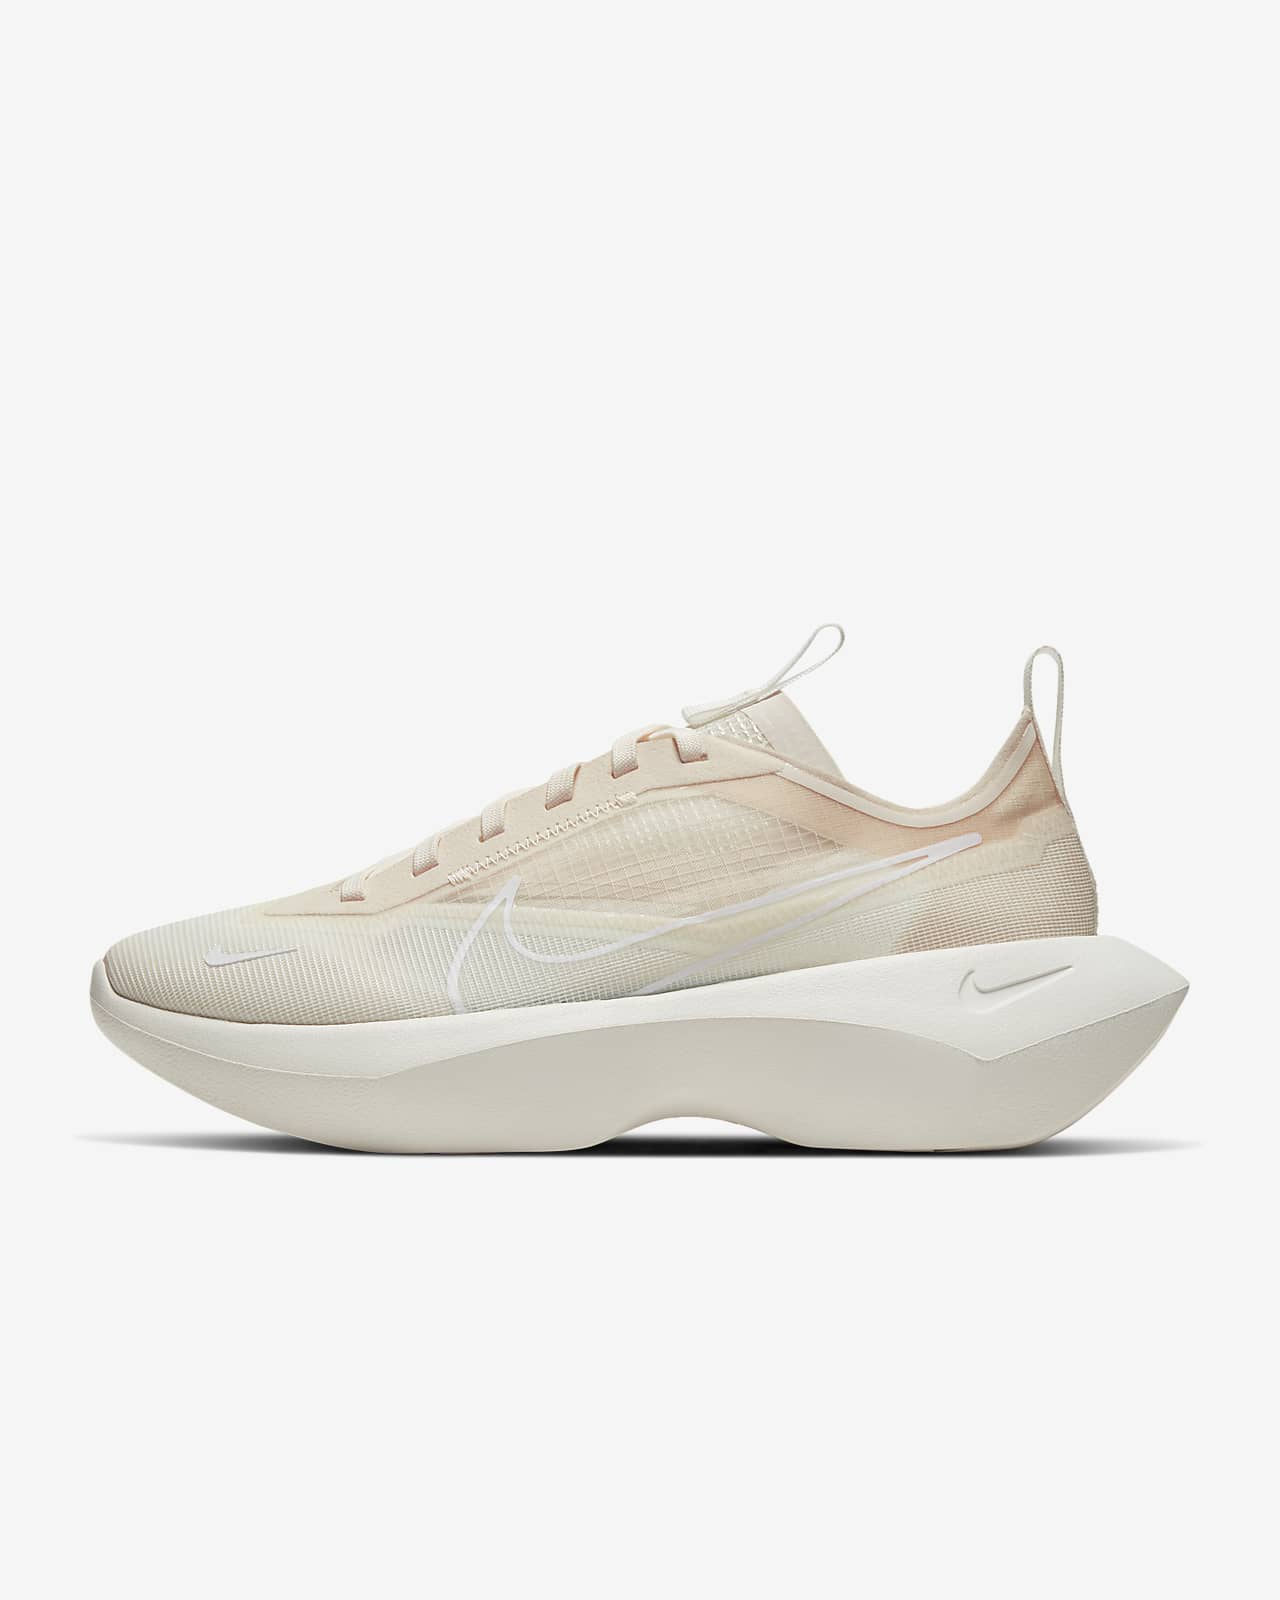 Nike Vista Lite Women's Shoe